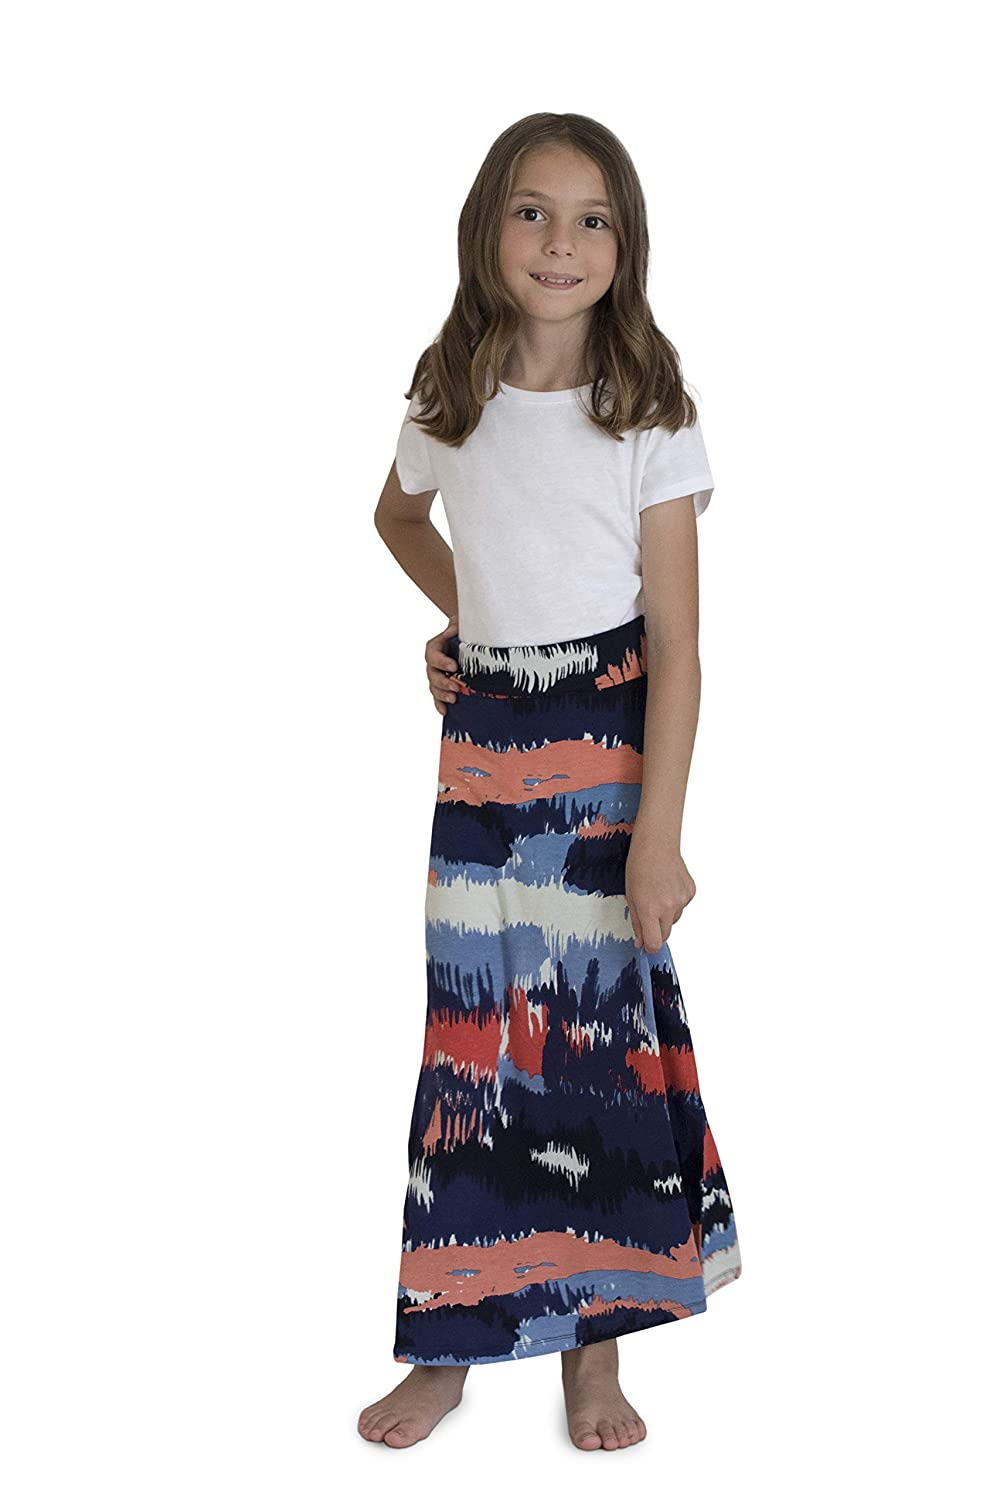 ef55165587 Amazon.com: KIDPIK Skirts for Girls – Cute Long Maxi Skirts in Black &  White 60s Stripes, Boho Tie-Dye, Desert Camo: Clothing